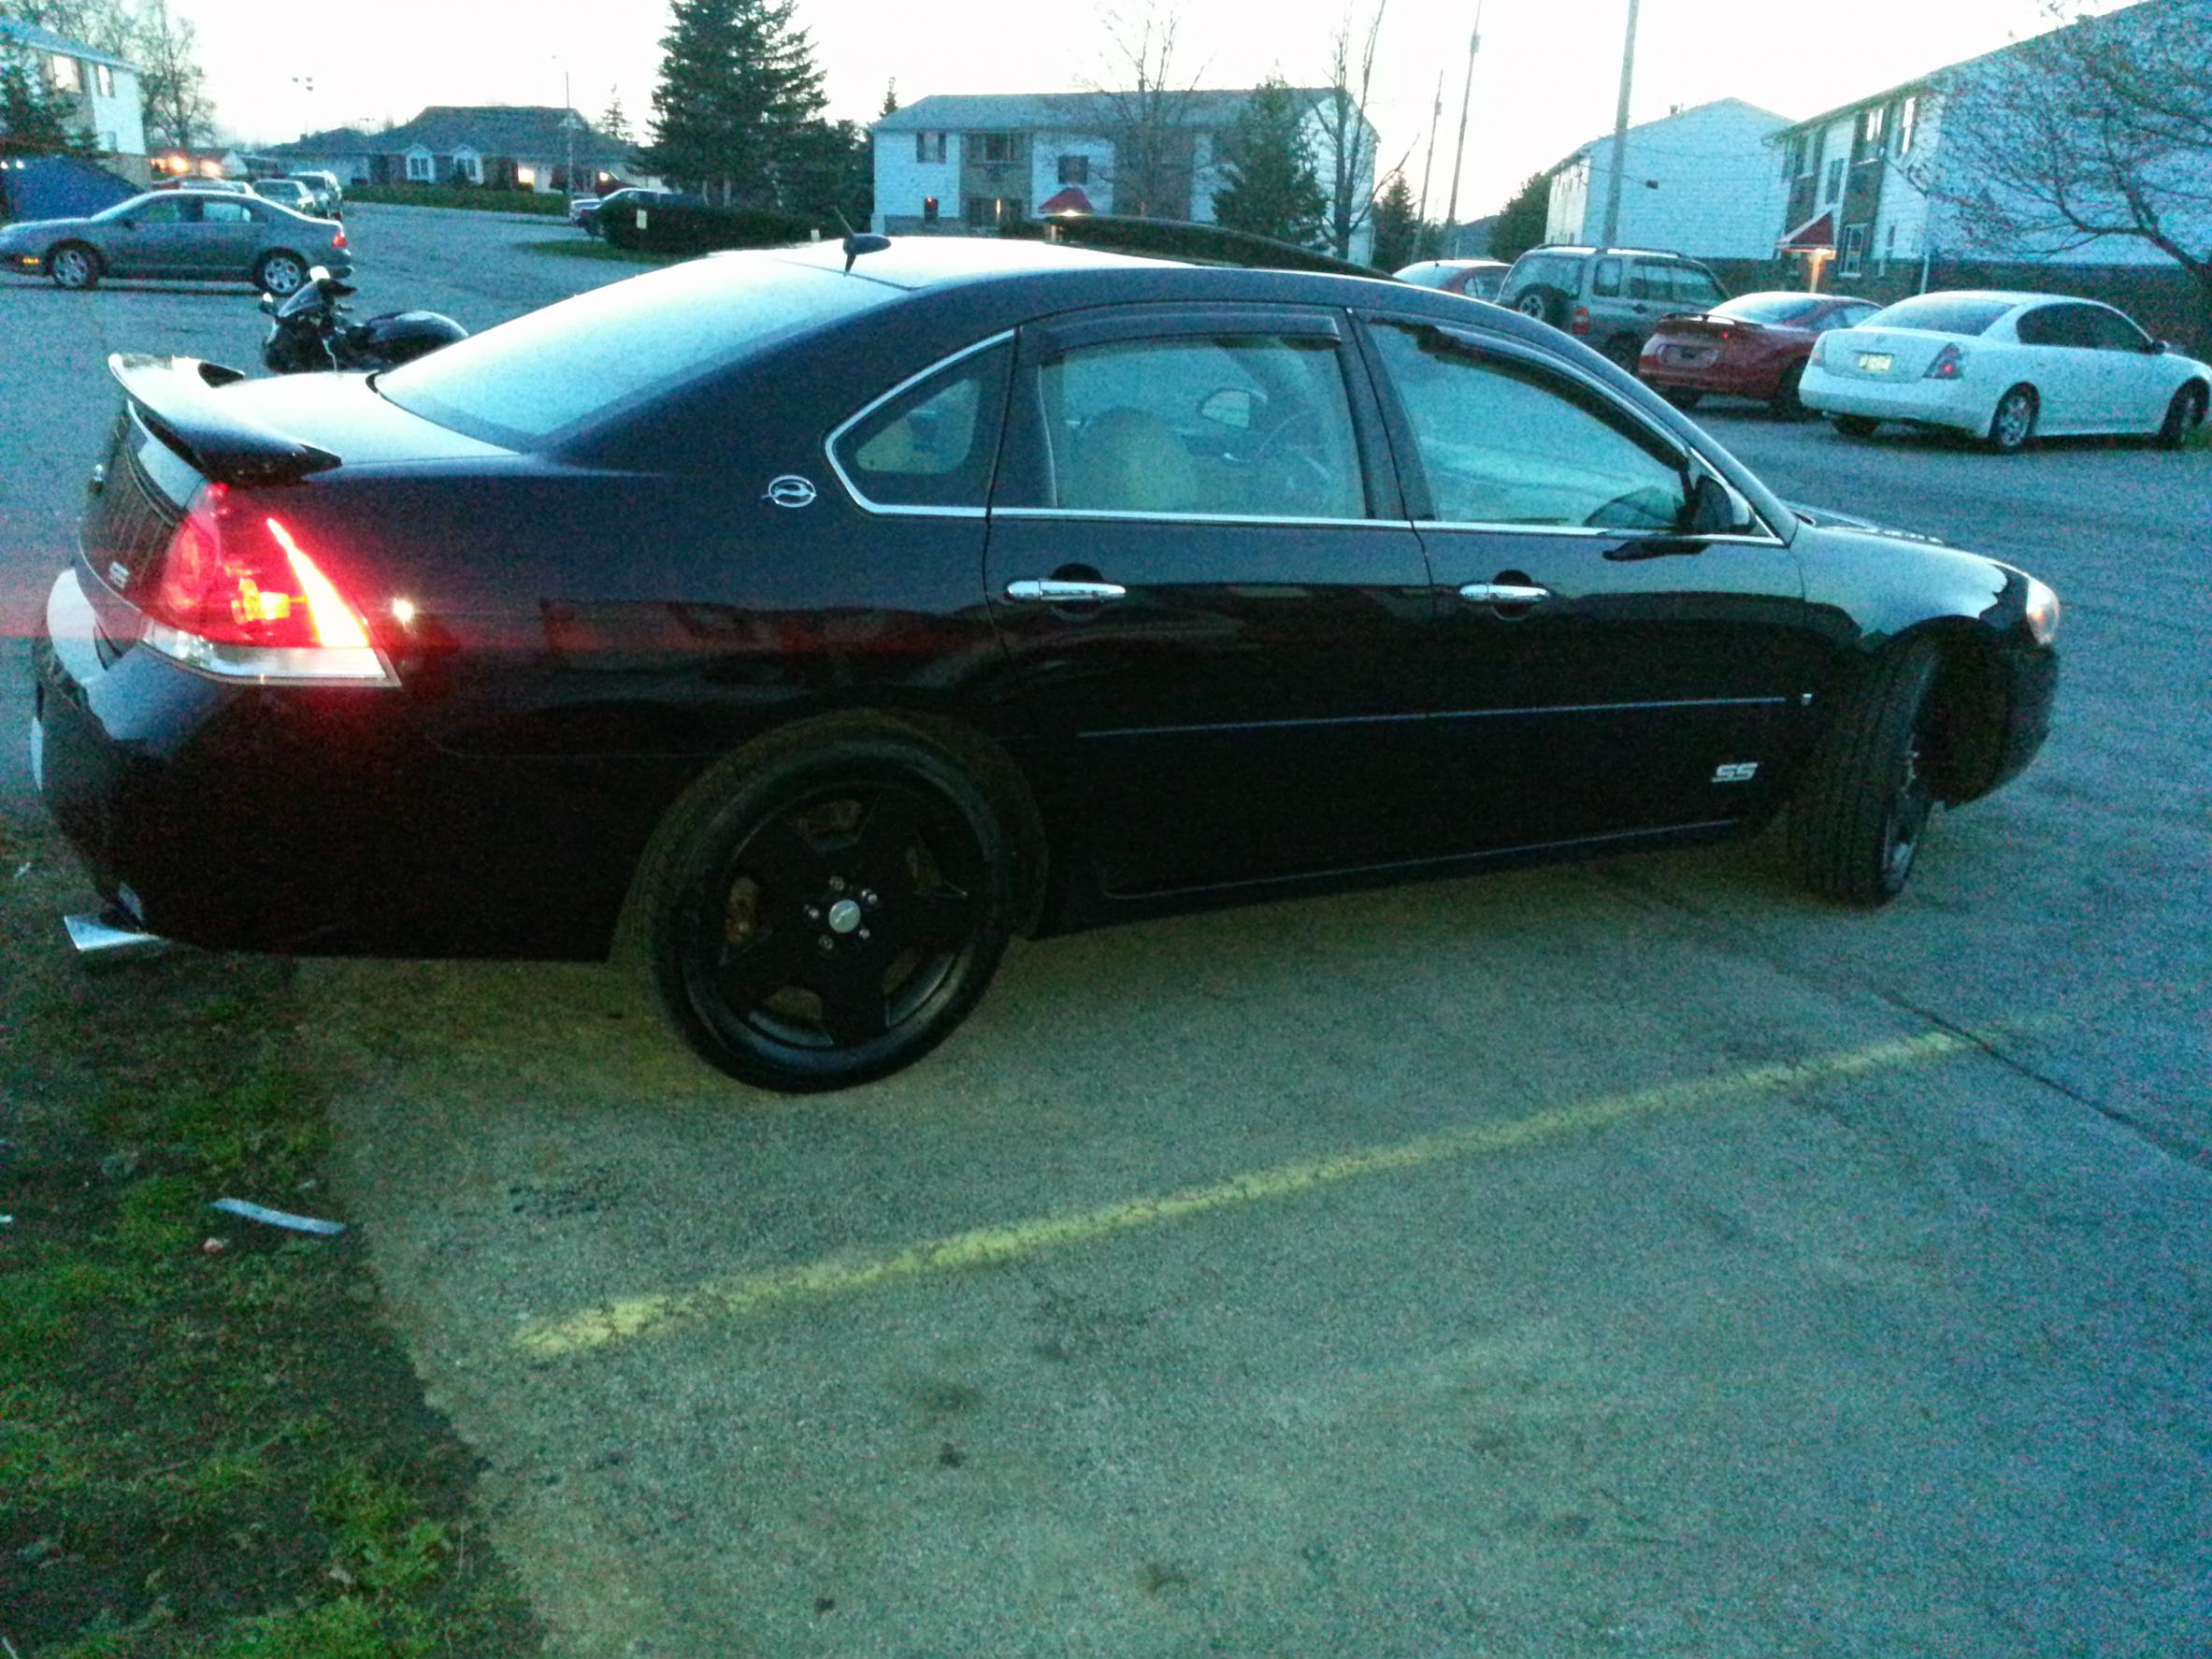 2006 impala ss for sale $5700 - Chevy Impala Forums